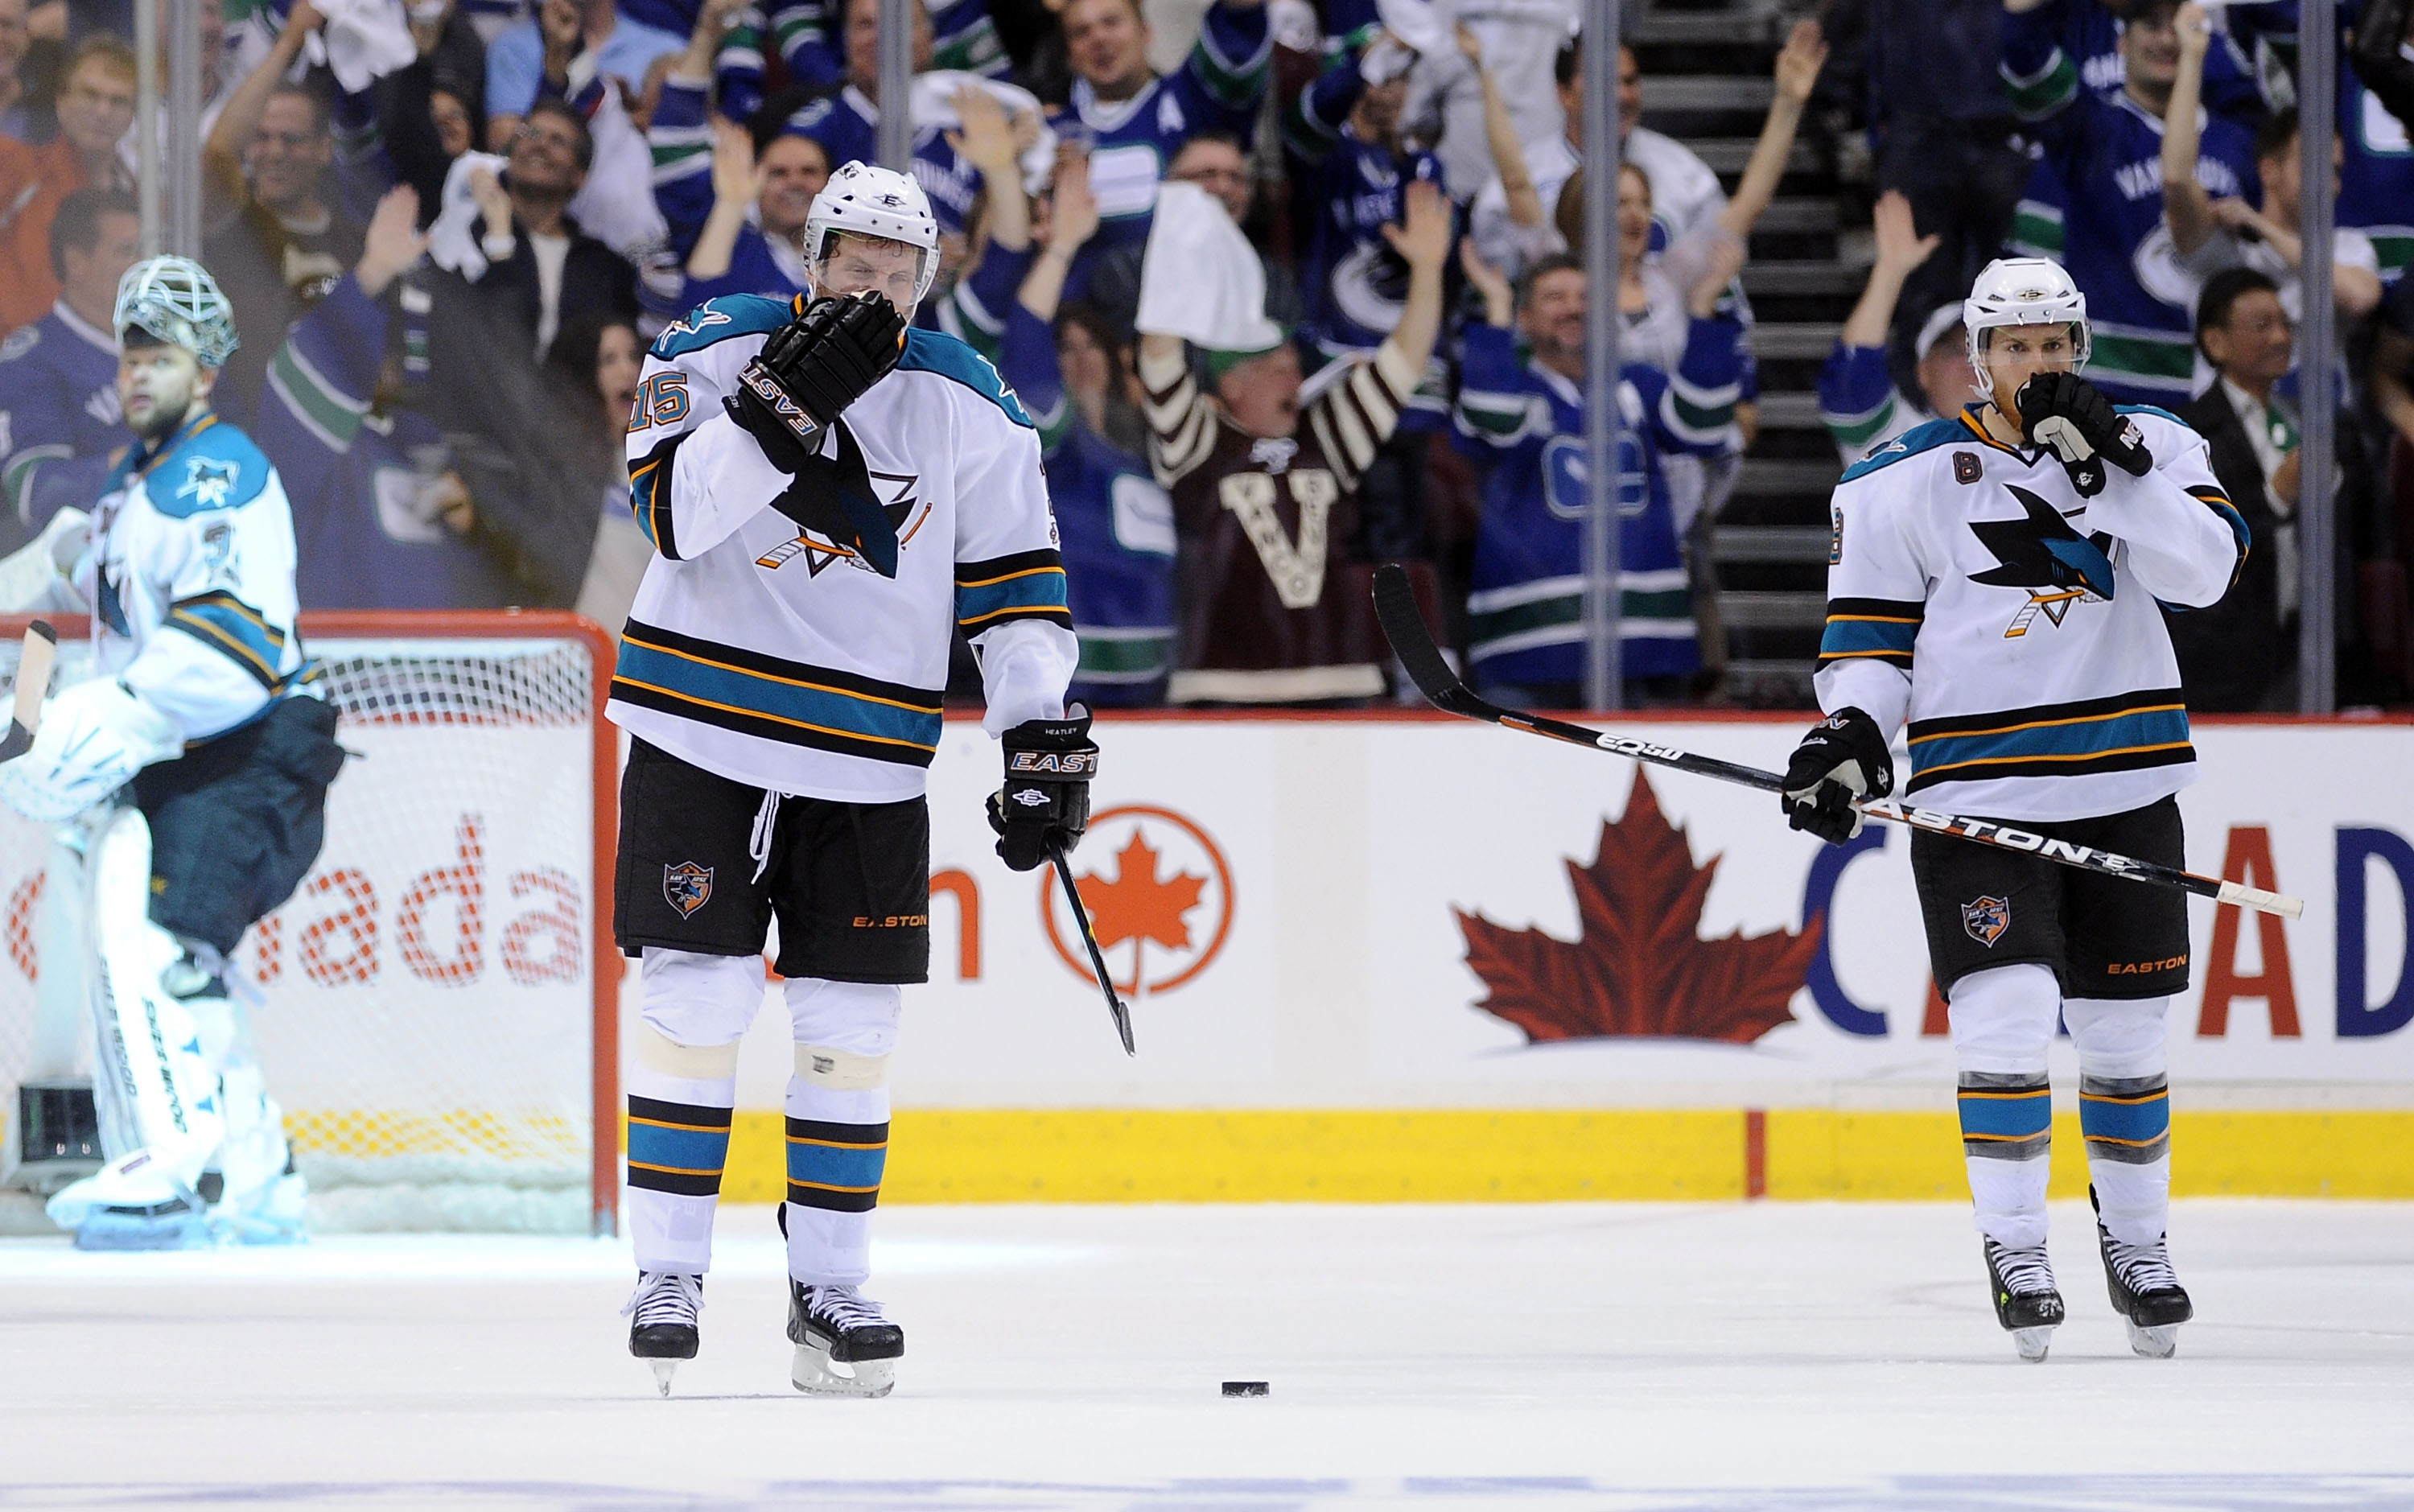 VANCOUVER, CANADA - MAY 18:  Antti Niemi #31, Dany Heatley #15 and Joe Pavelski #8 of the San Jose Sharks look on after a goal by Daniel Sedin #22 of the Vancouver Canucks in the third period in Game Two of the Western Conference Finals during the 2011 St